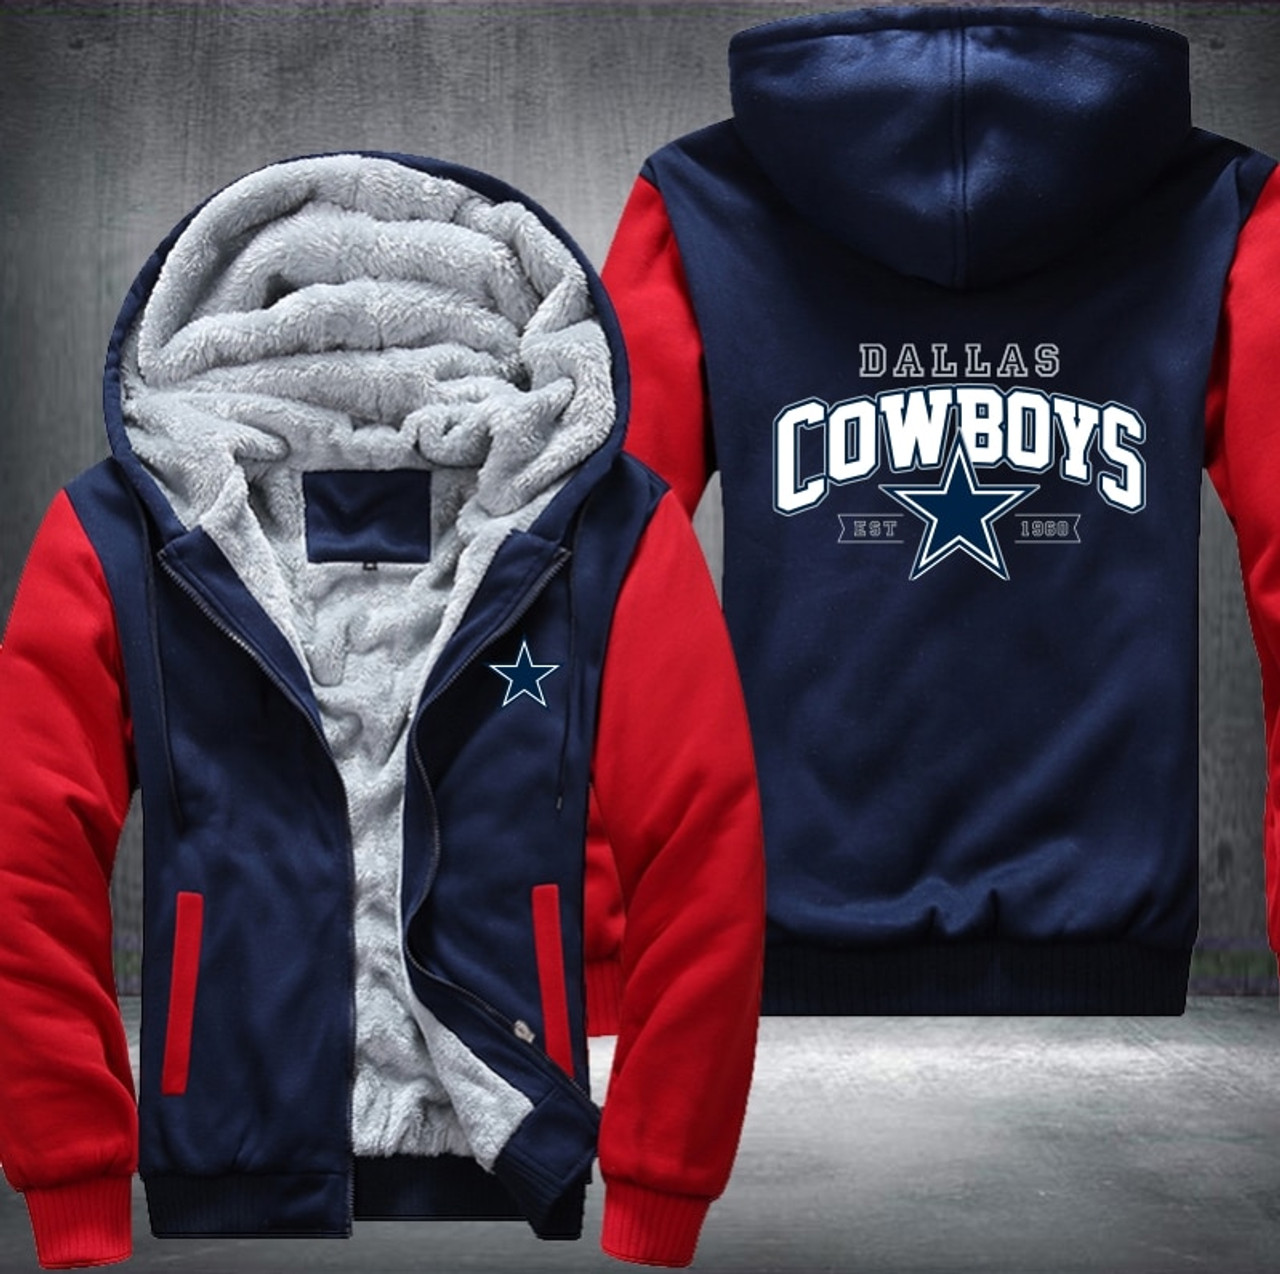 low priced 2c553 e8f4d **(OFFICIALLY-LICENSED-N.F.L.DALLAS-COWBOYS-FLEECE-JACKETS/NEW-TWO-TONE-BLUE  & RED,WARM-FLEECE-LINED-TEAM-JACKETS/3-D-CUSTOM-DETAILED-GRAPHIC-PRINTED-...